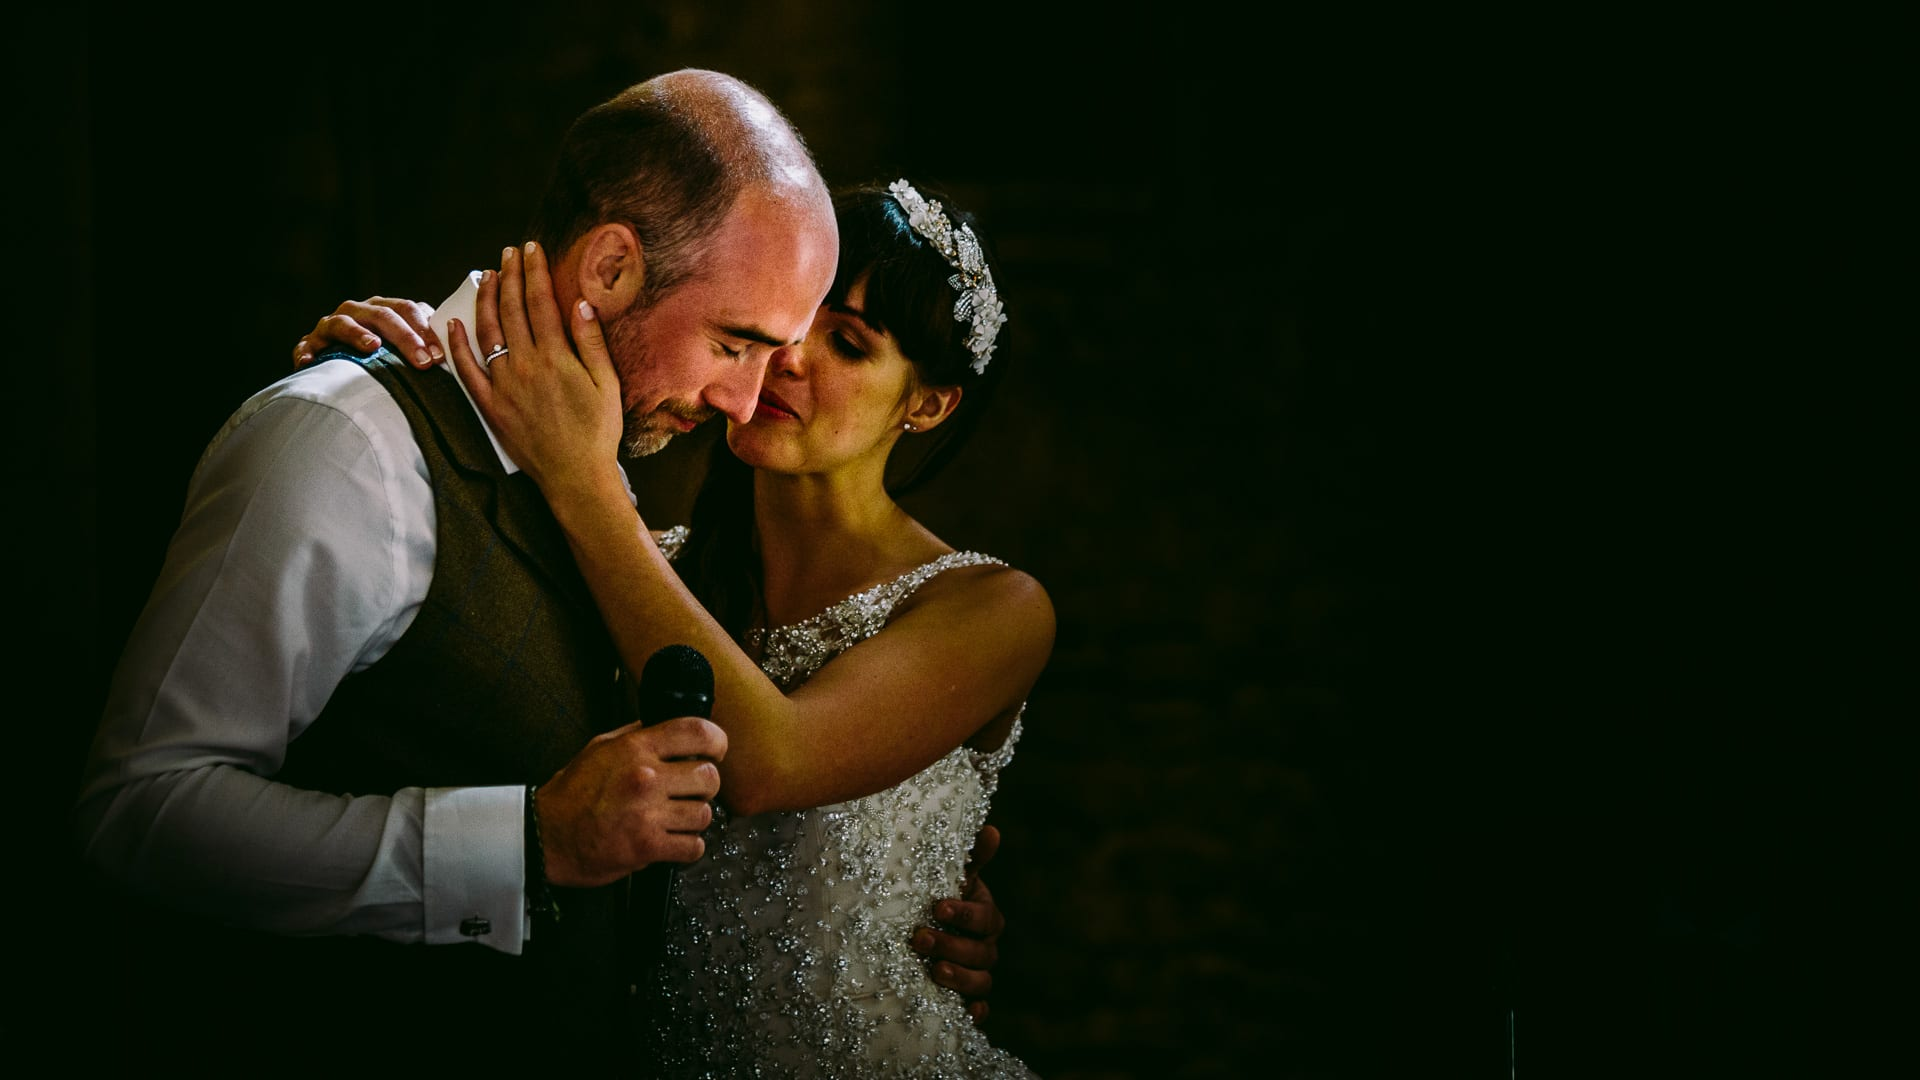 An emotional groom is held by his bride during his speech